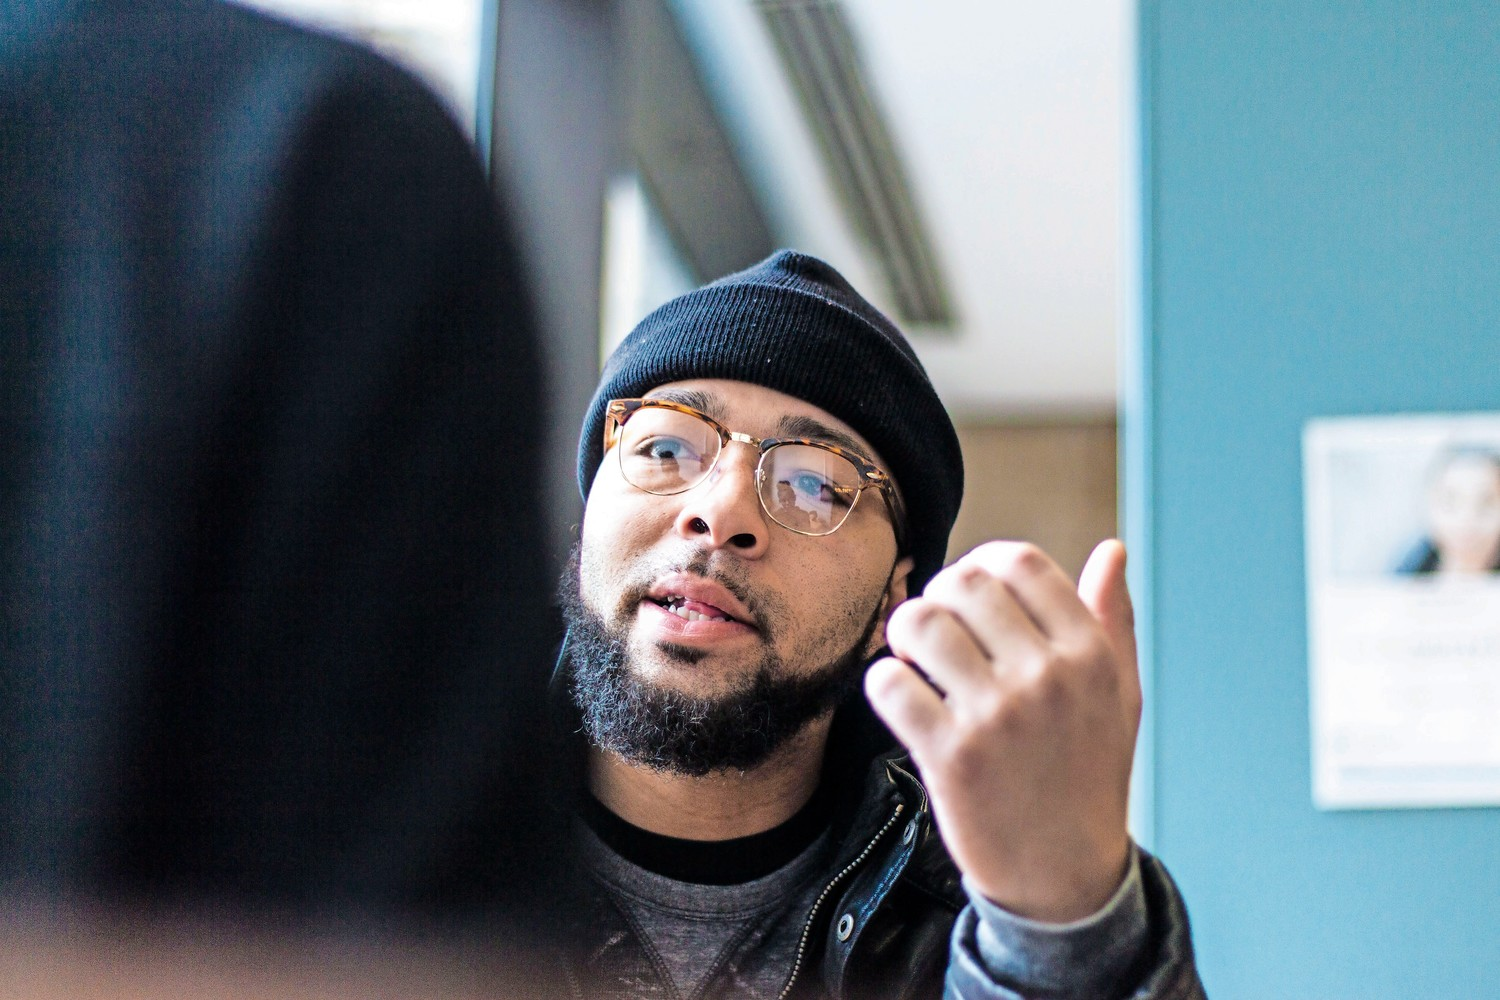 Featured in the documentary 'Rikers: An American Jail,' Damian Stapleton recently spoke during a screening and panel discussion of the film at Lehman College. Stapleton was a former inmate at the notoriously violent city jail in 2007 before he was convicted of robbery and sent to an upstate prison.